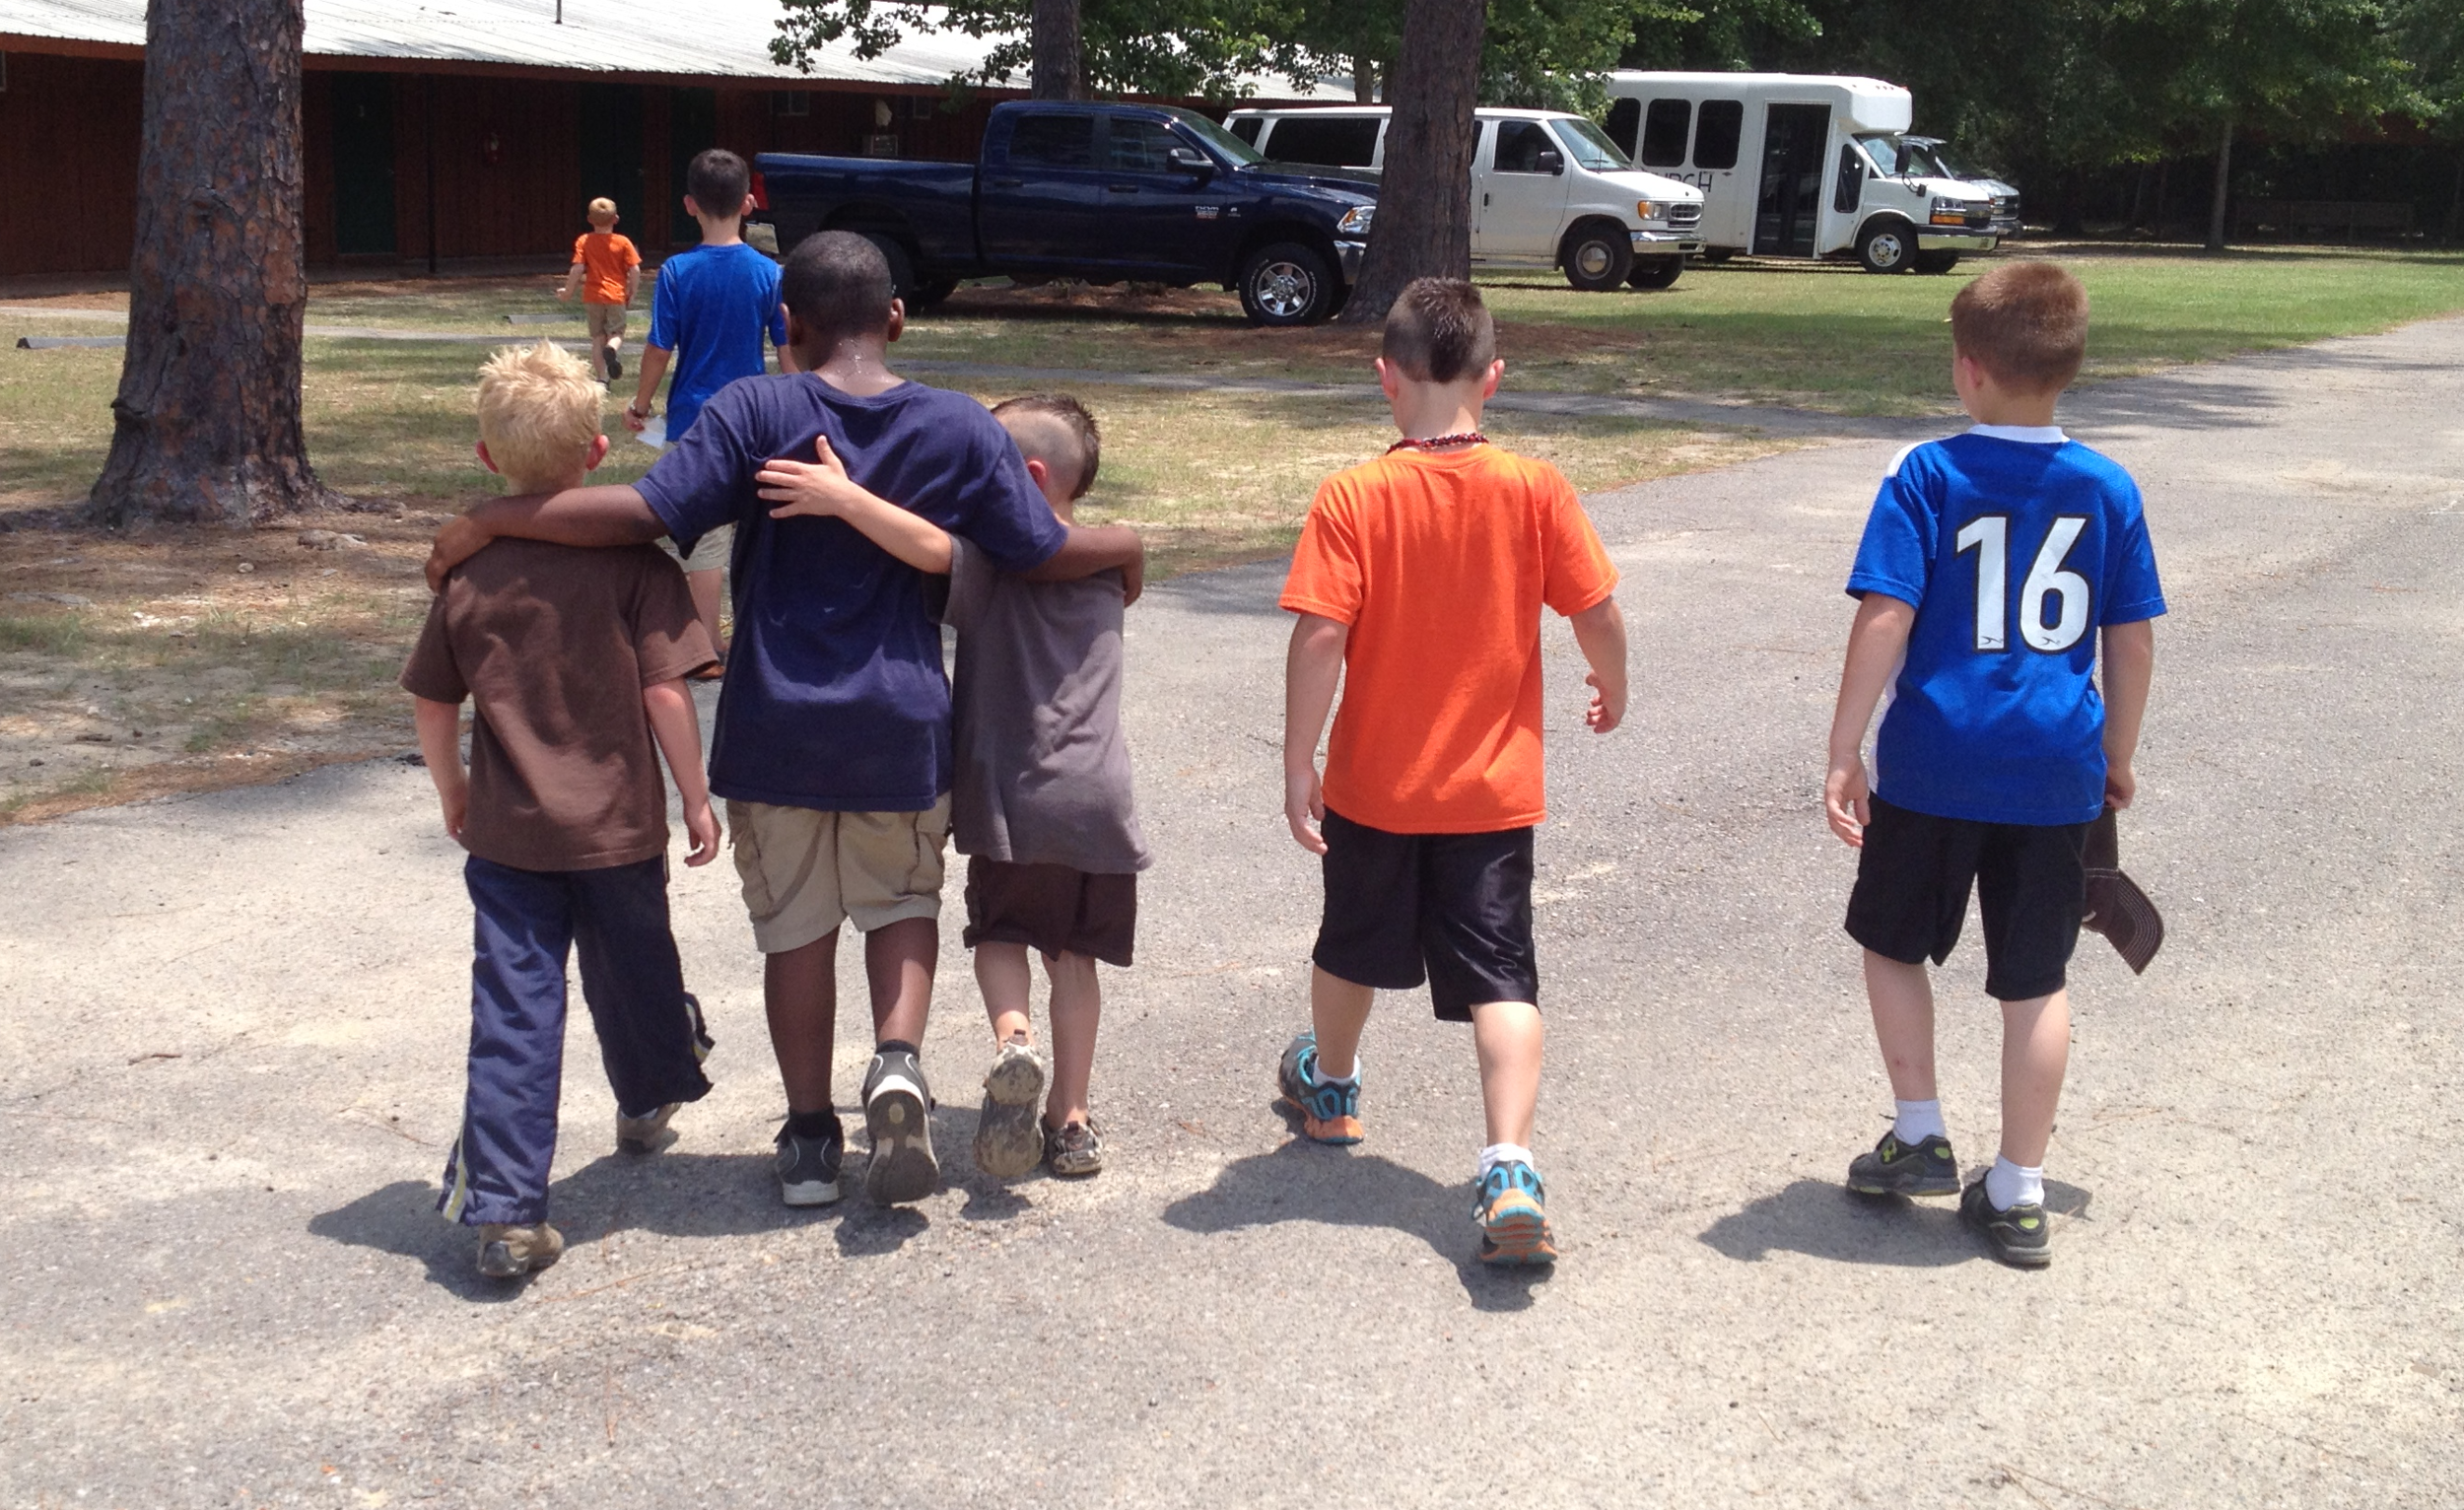 Five friends at Summer Camp.